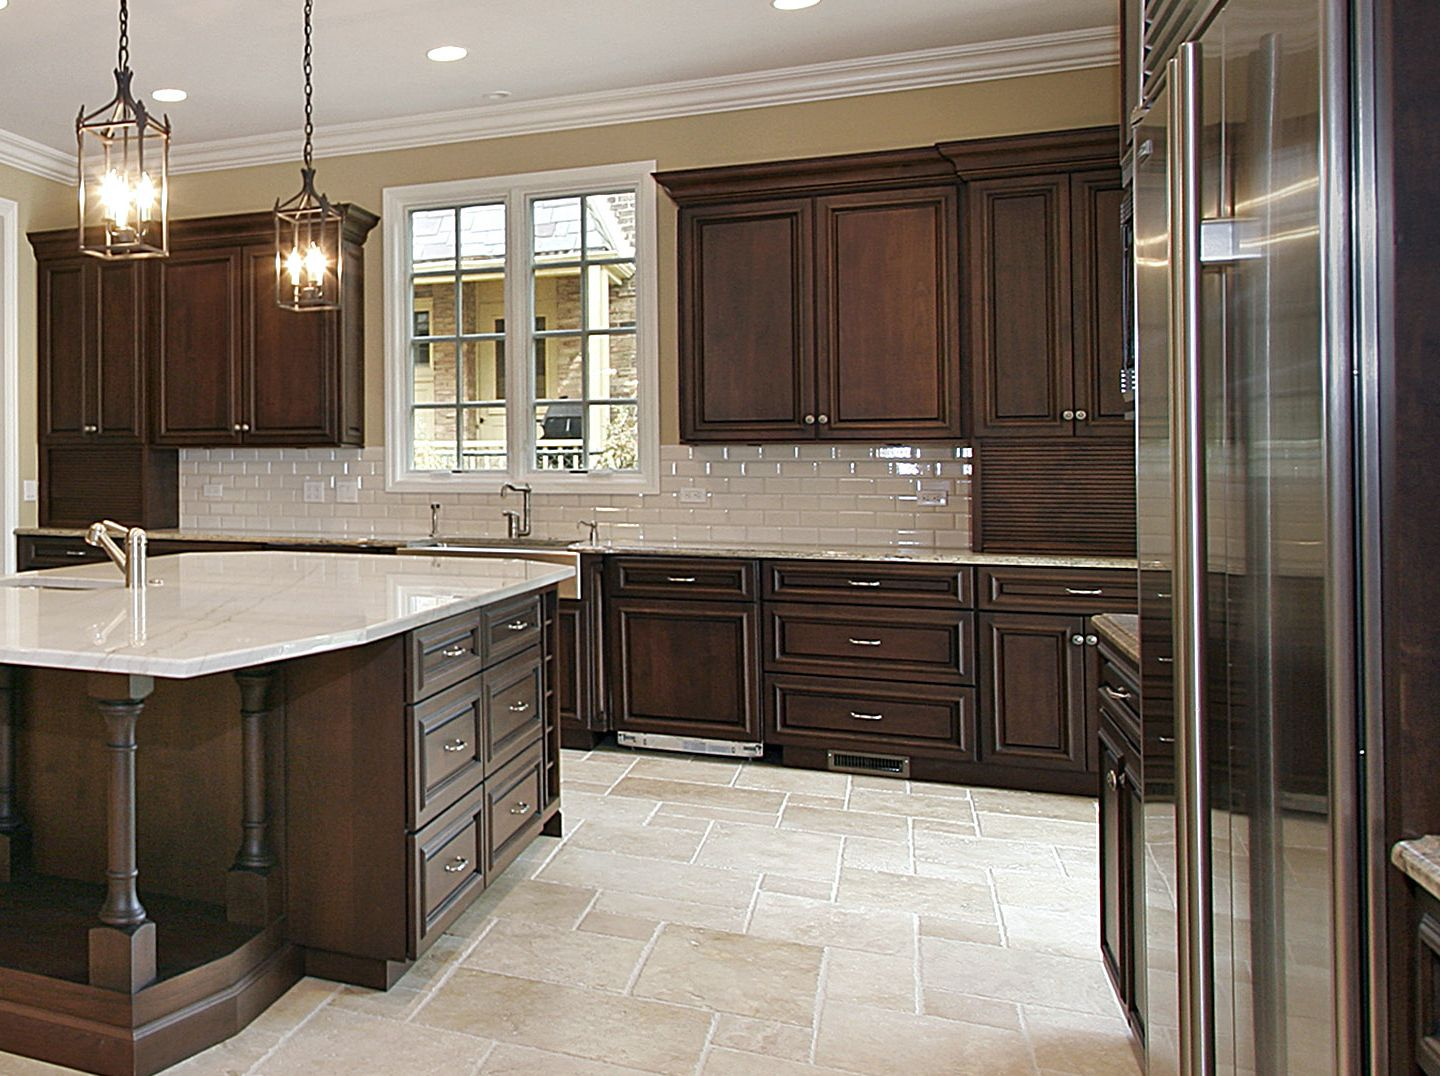 brown kitchen cabinets Classic dark cherry kitchen with large island www prasadakitchens com